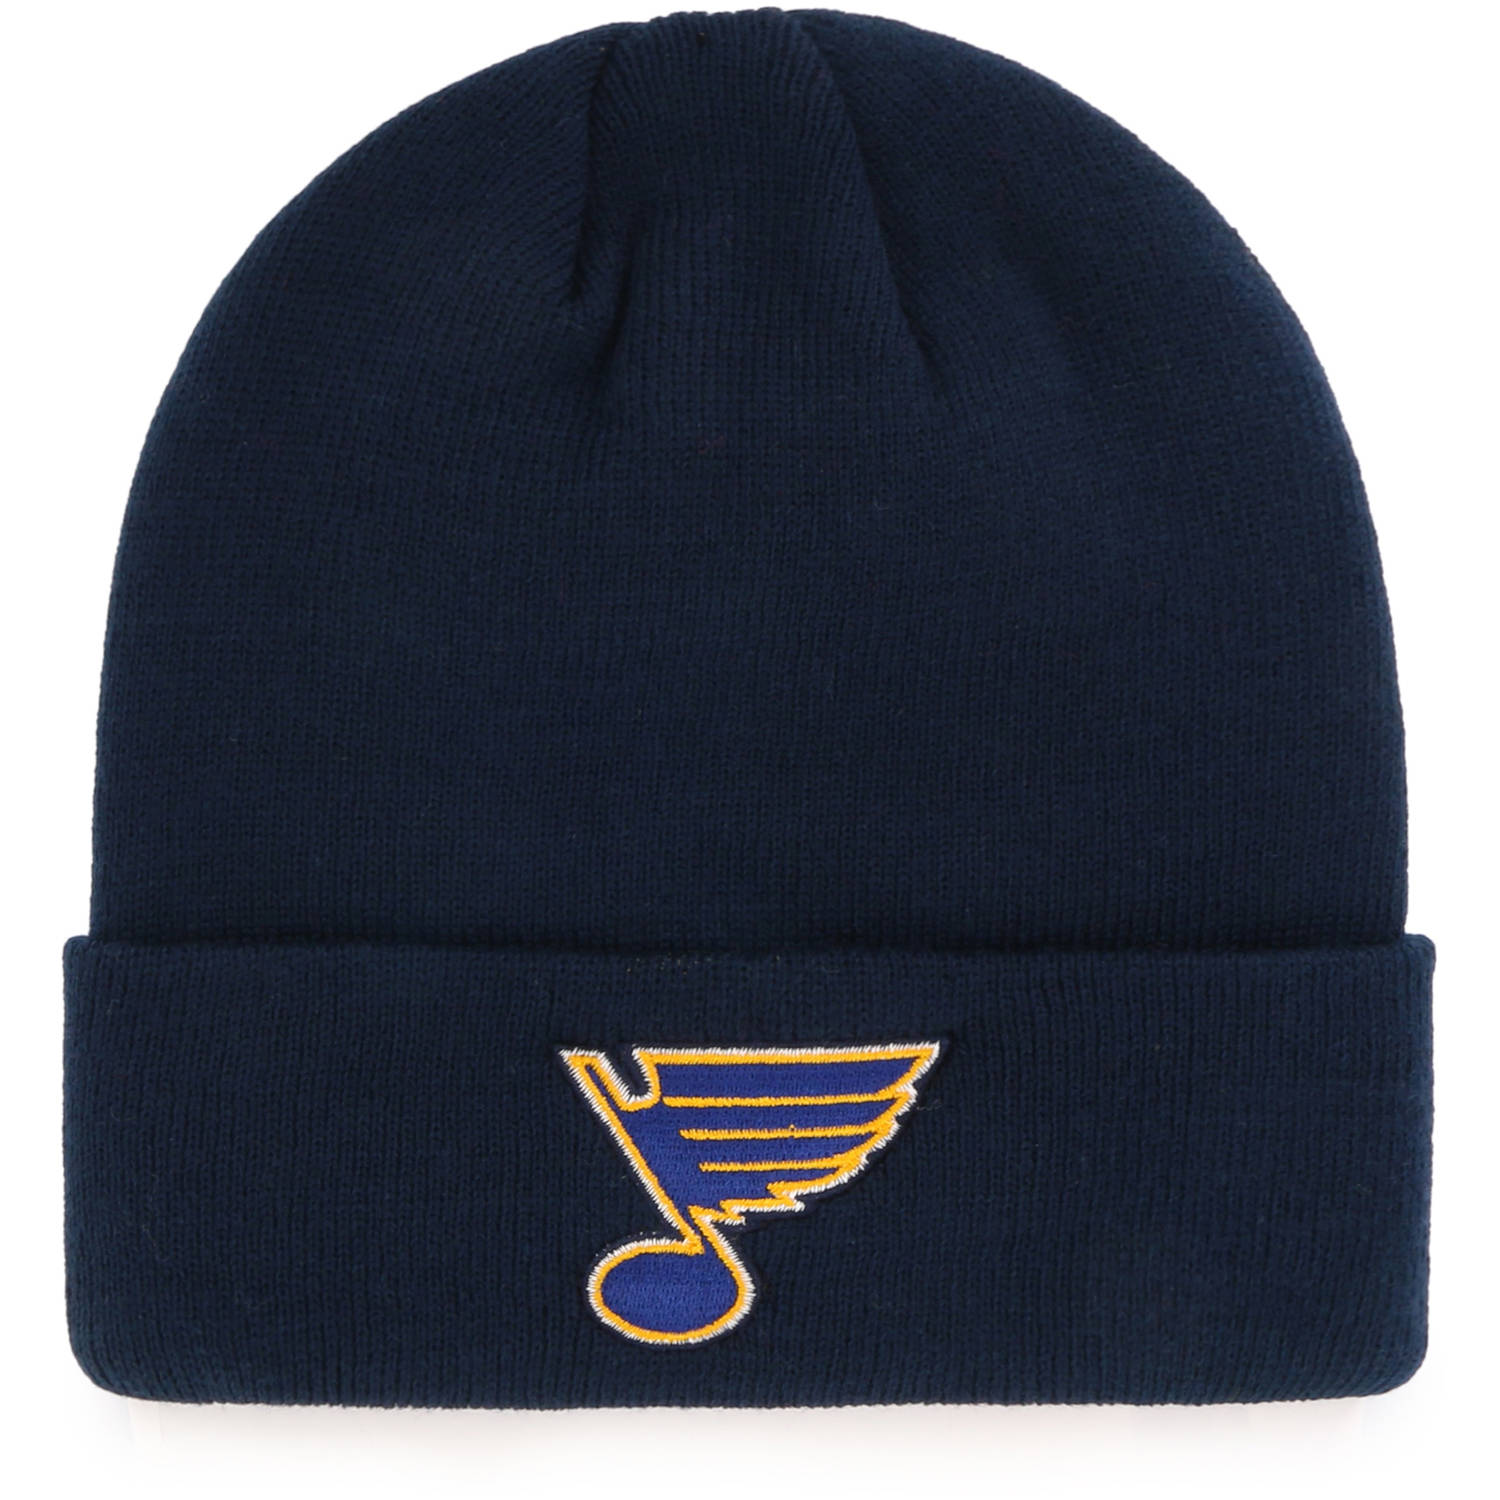 St Louis Blues Mass Cuff Knit Cap - Fan Favorite